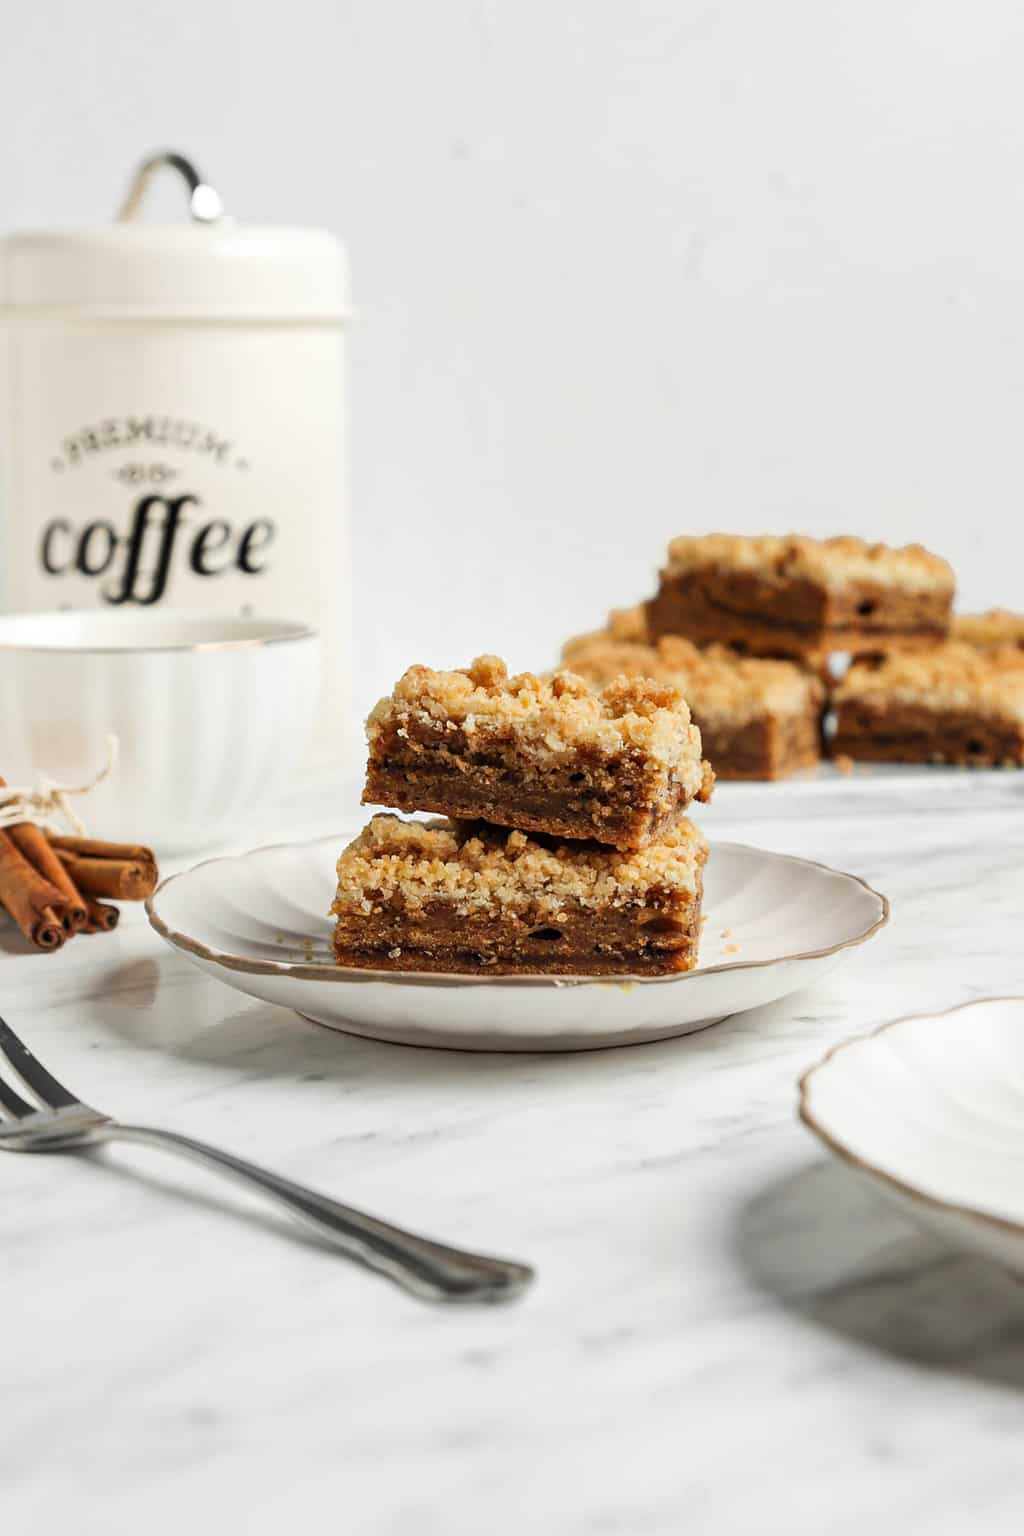 two slices of coffee cake on white plate